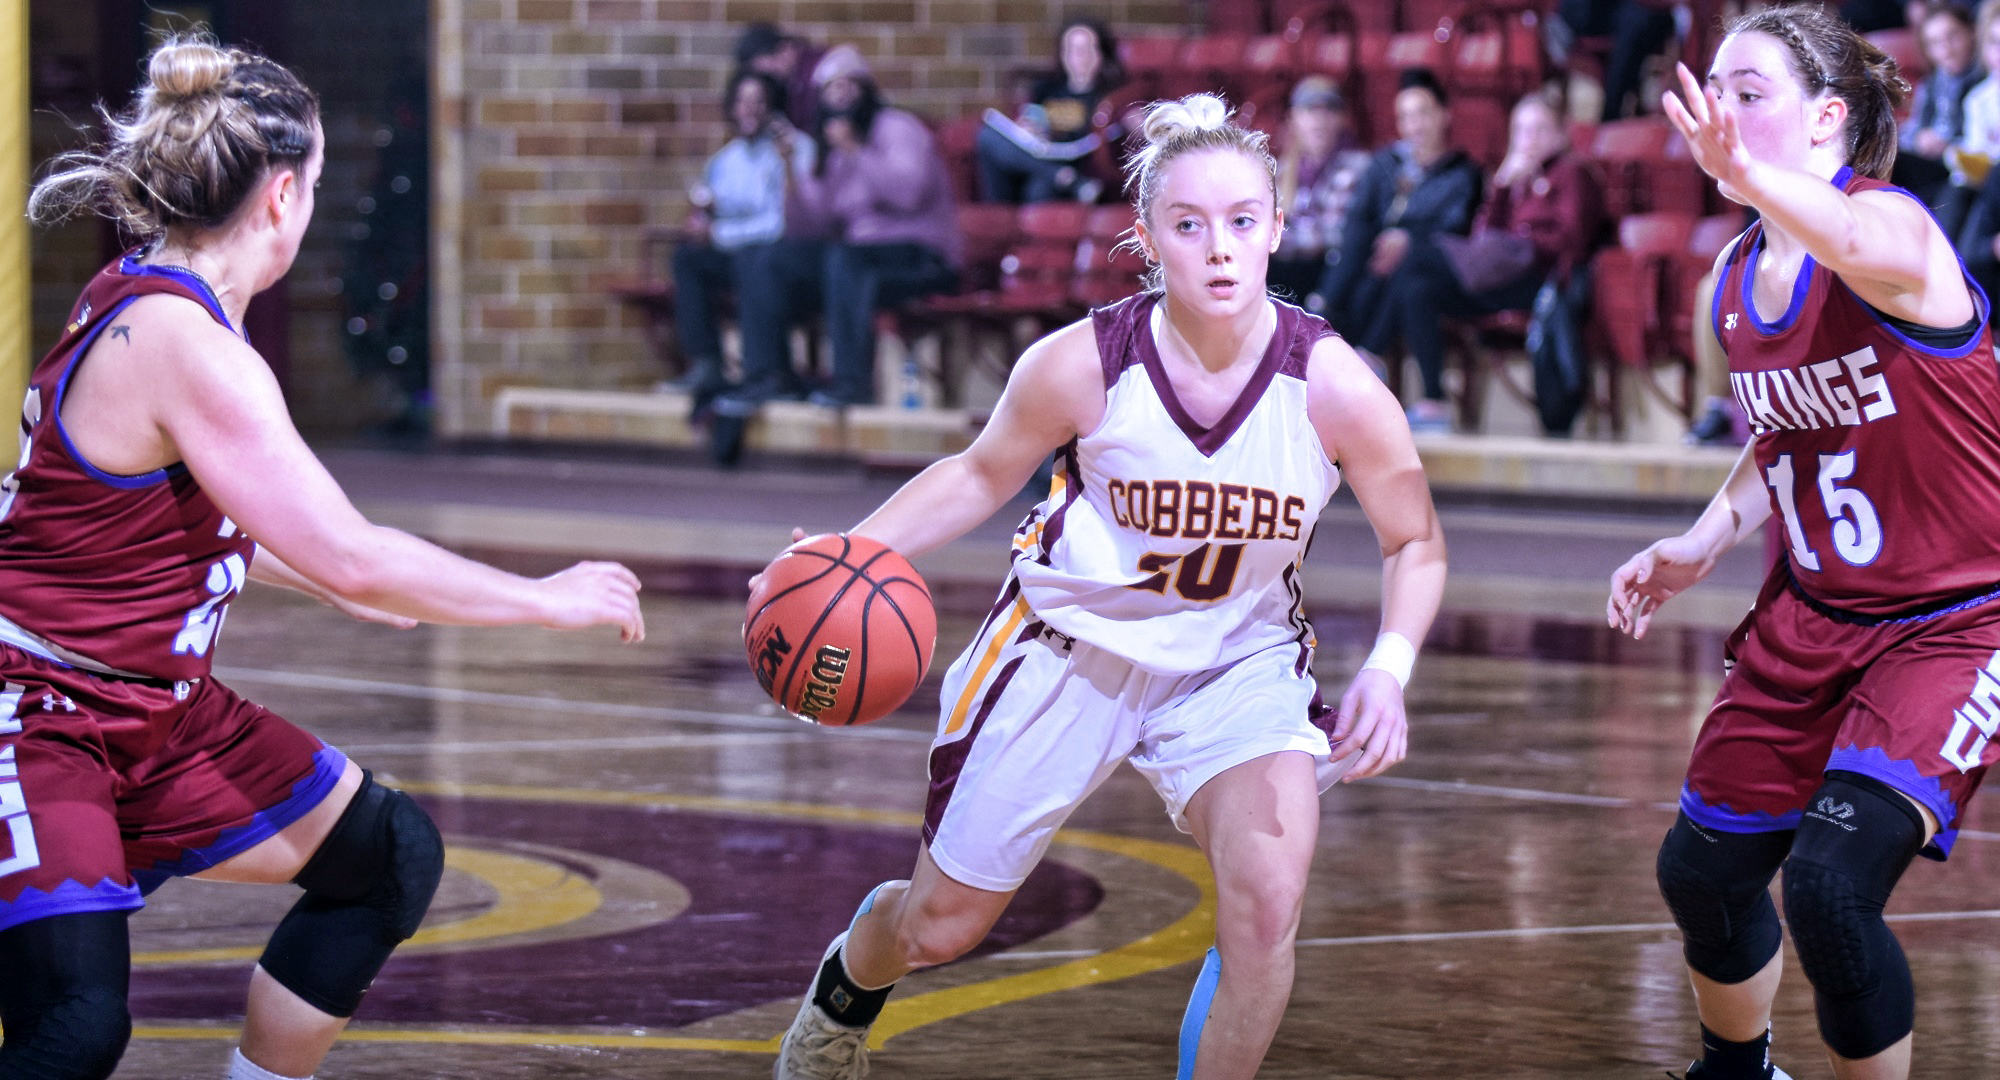 Sophomore Amber Lingen dribbles the ball to the basket during the Cobbers' home opener with Valley City St. She finished with a career-high 22 points.